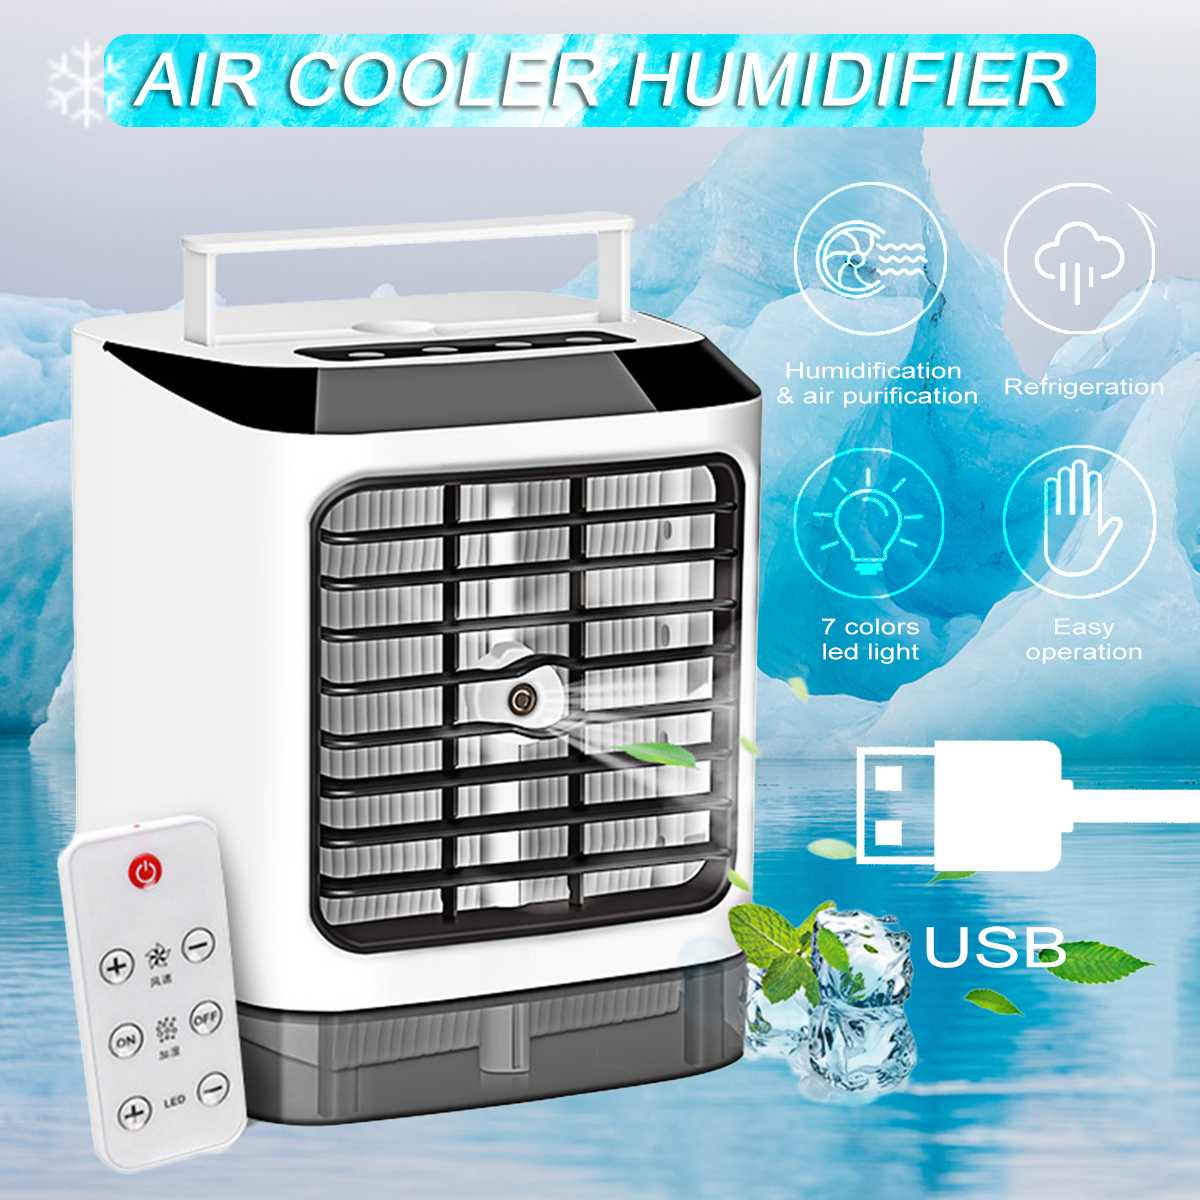 3IN1 Mini Portable Air Conditioner 7 Colors LED Conditioning Humidifier Purifier USB Desktop Air Cooler Fan + Remote Controller